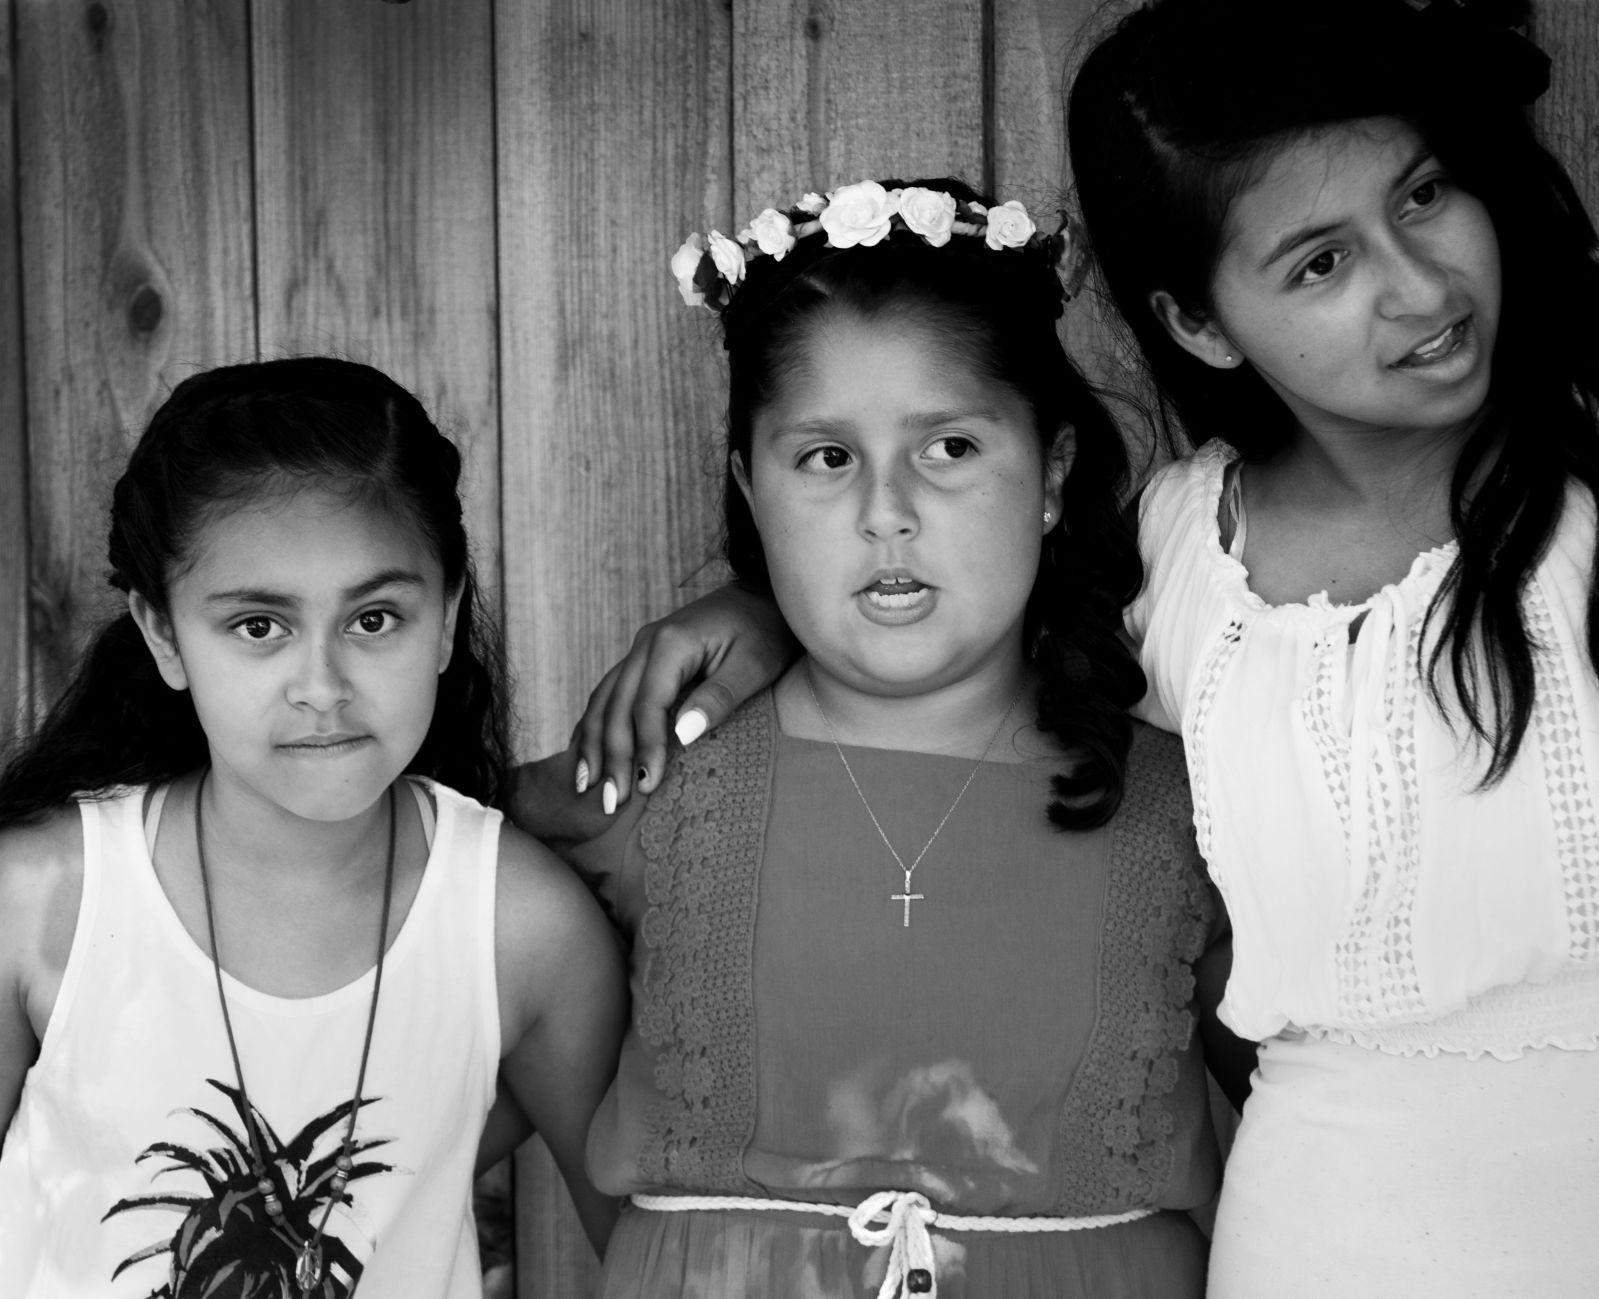 three_amigas_2_bw.jpg